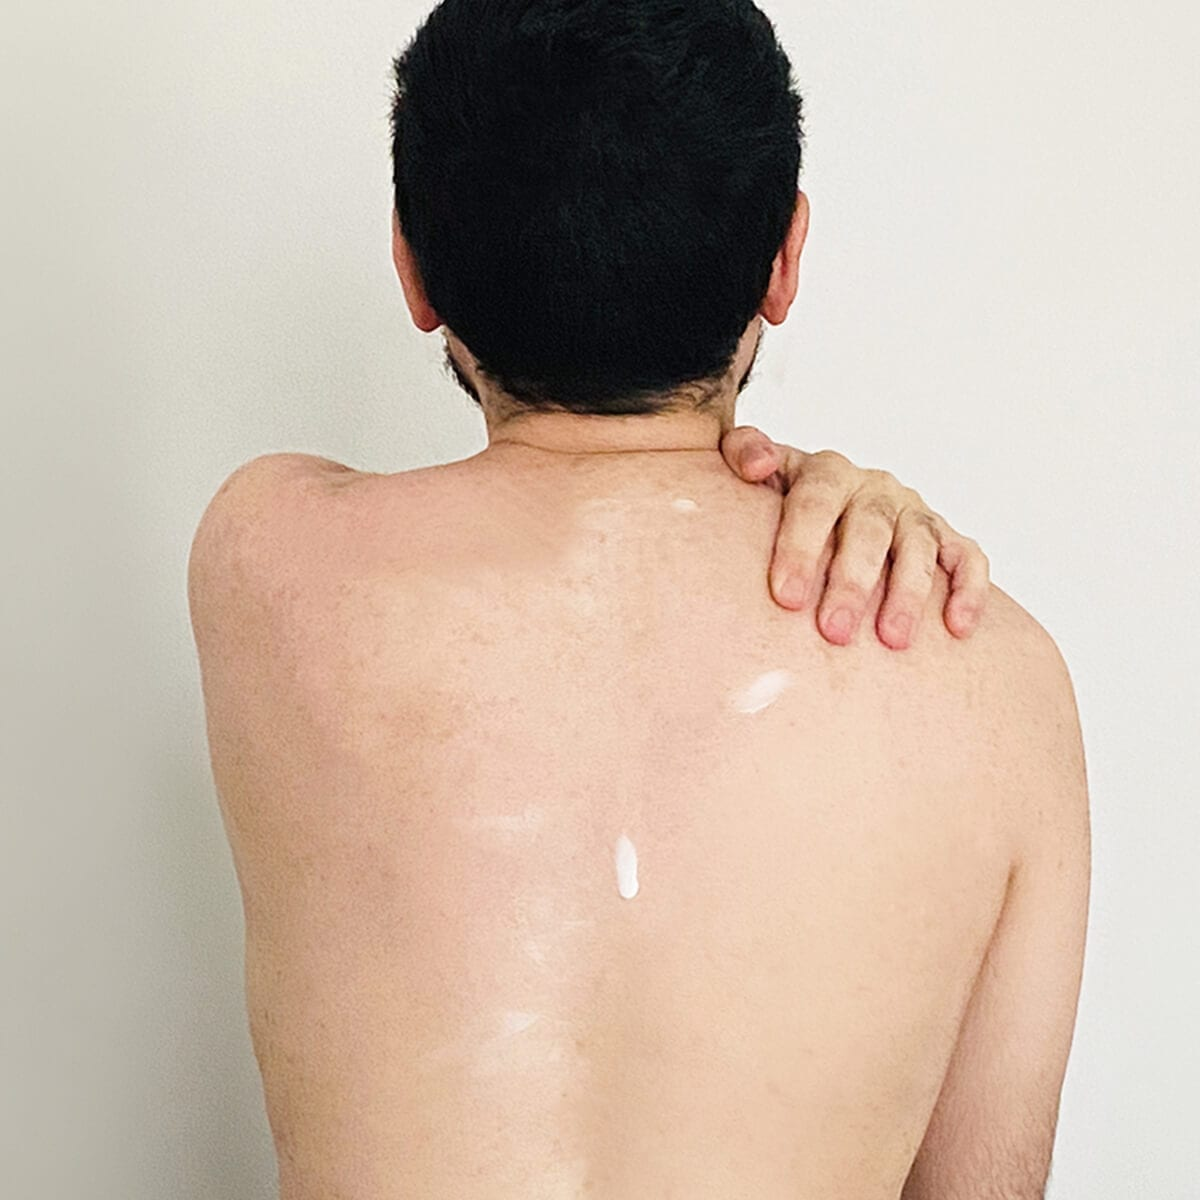 man putting lotion on his back